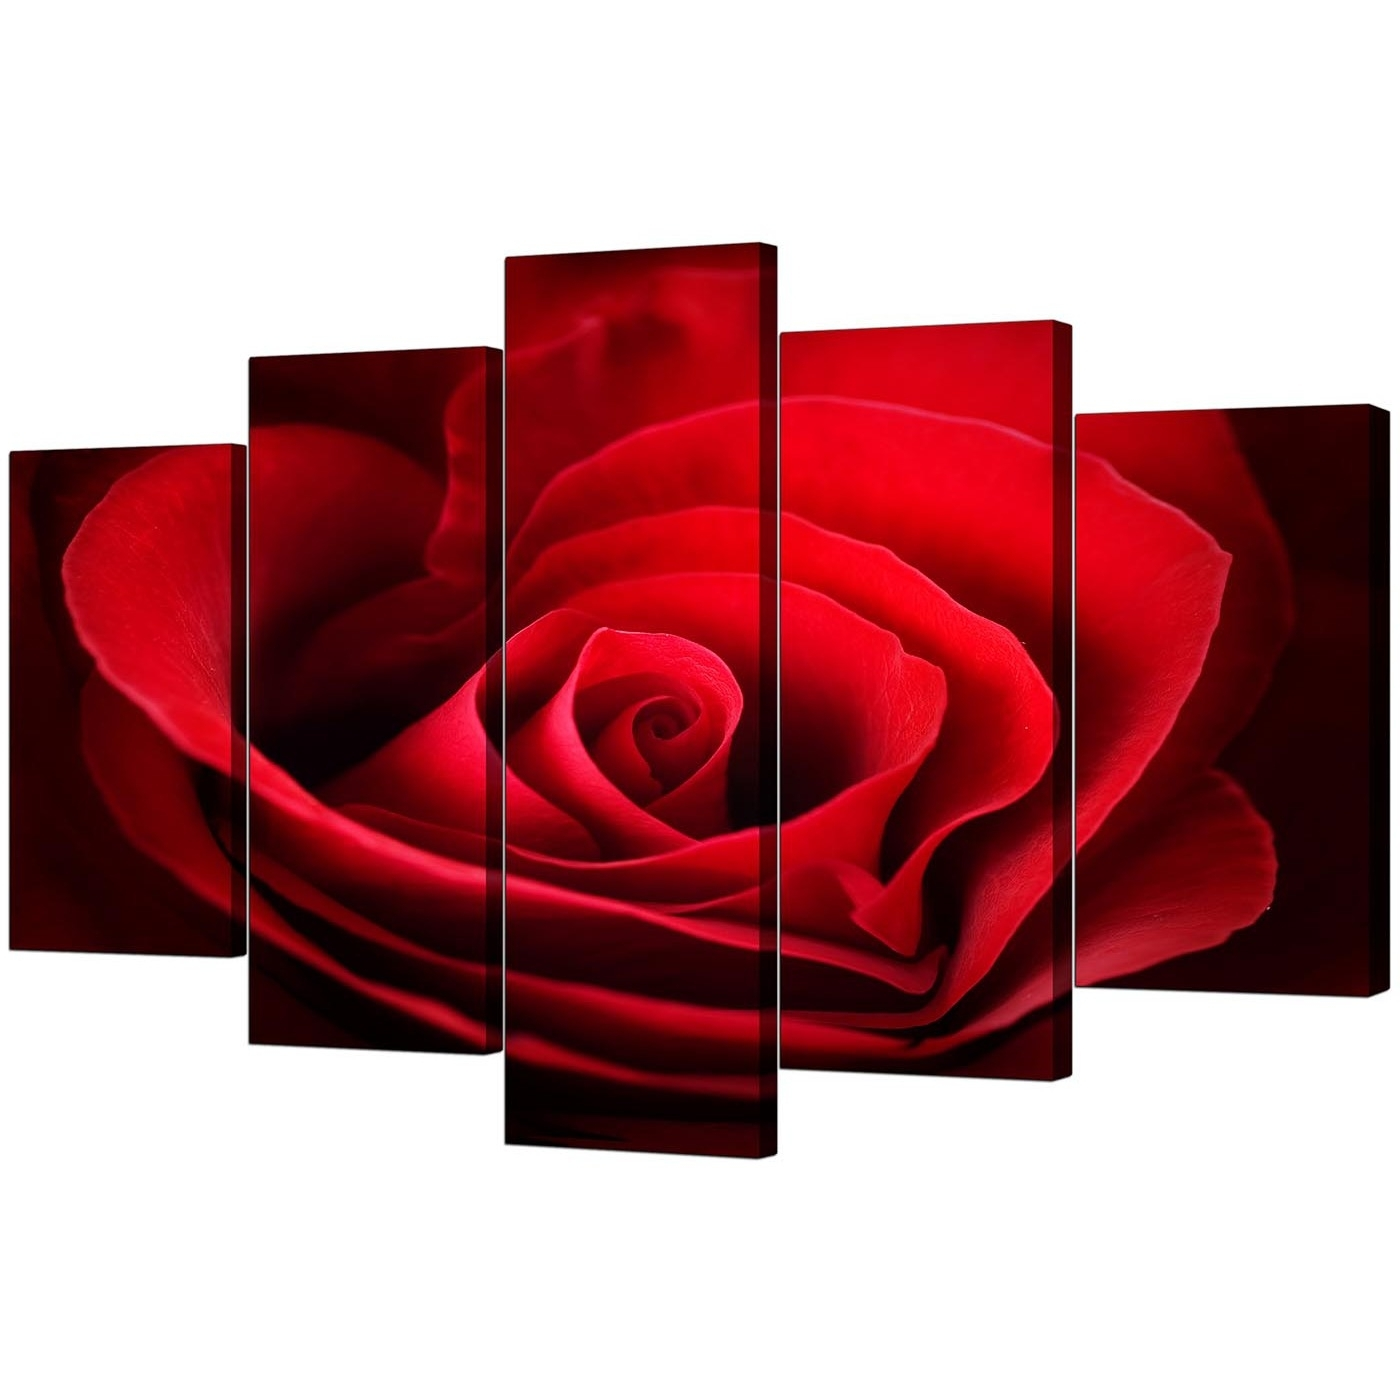 Red Rose Wall Art Regarding Popular Extra Large Rose Canvas Wall Art 5 Panel In Red (View 11 of 15)